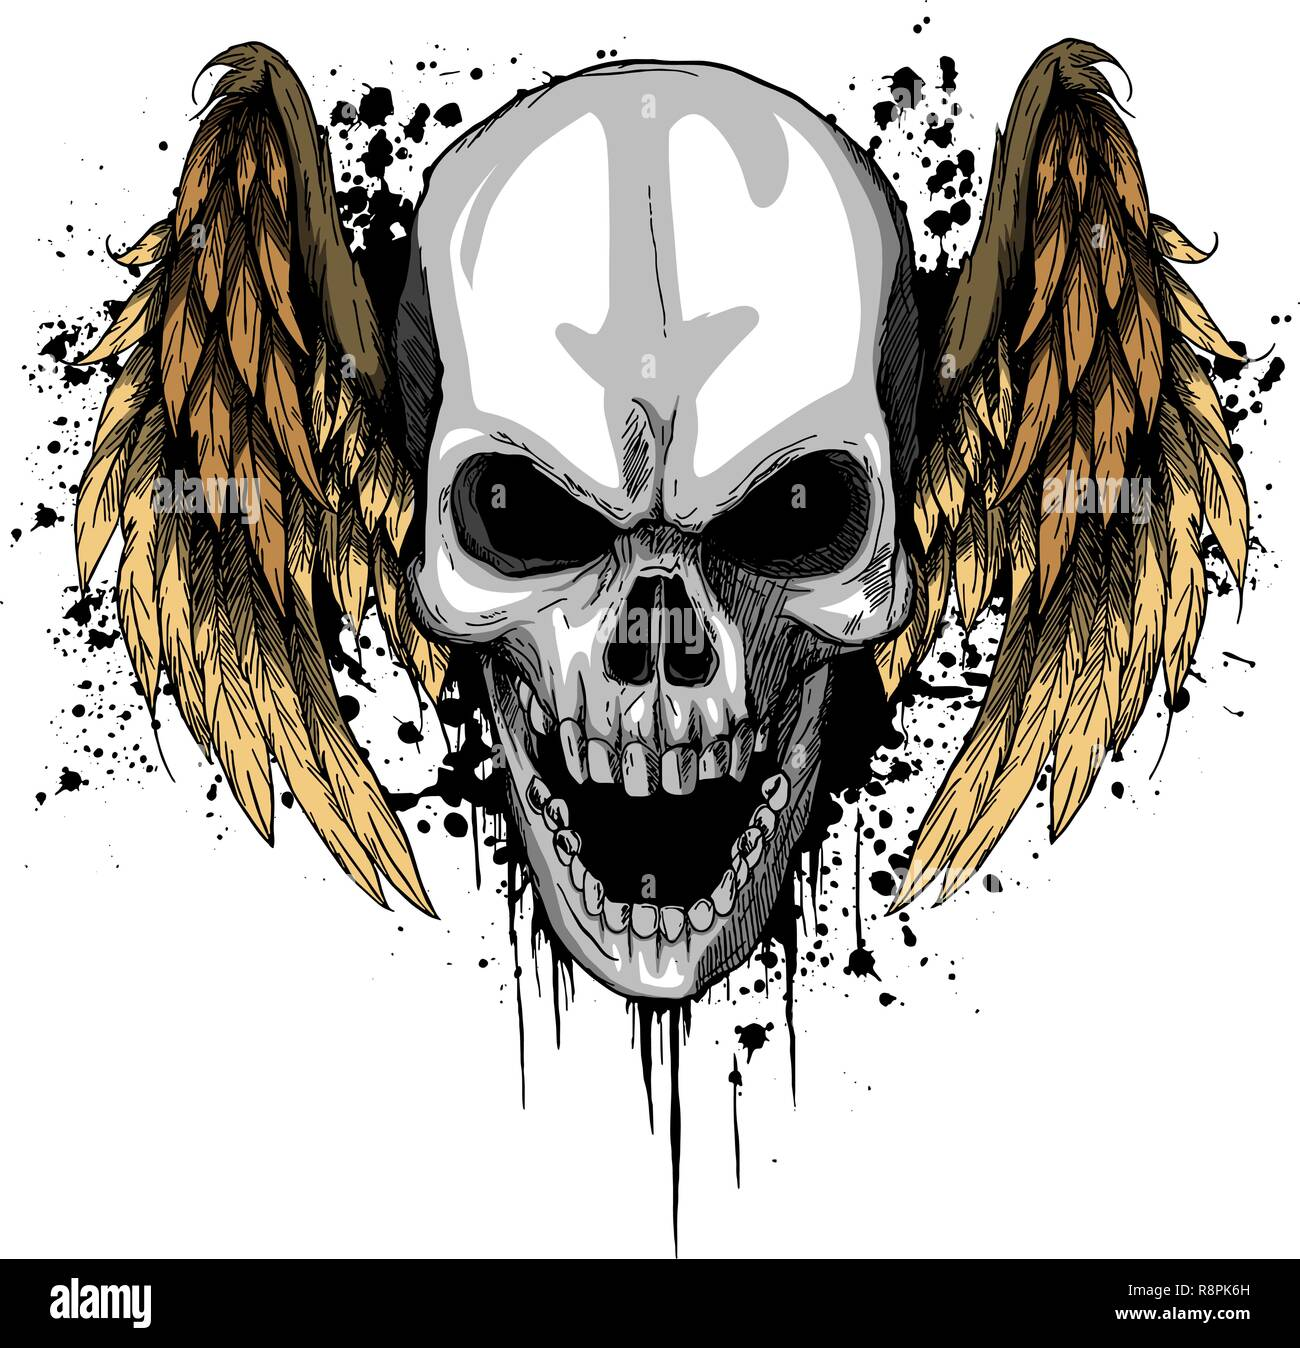 a human Skull with Wings Vector Illustration - Stock Image